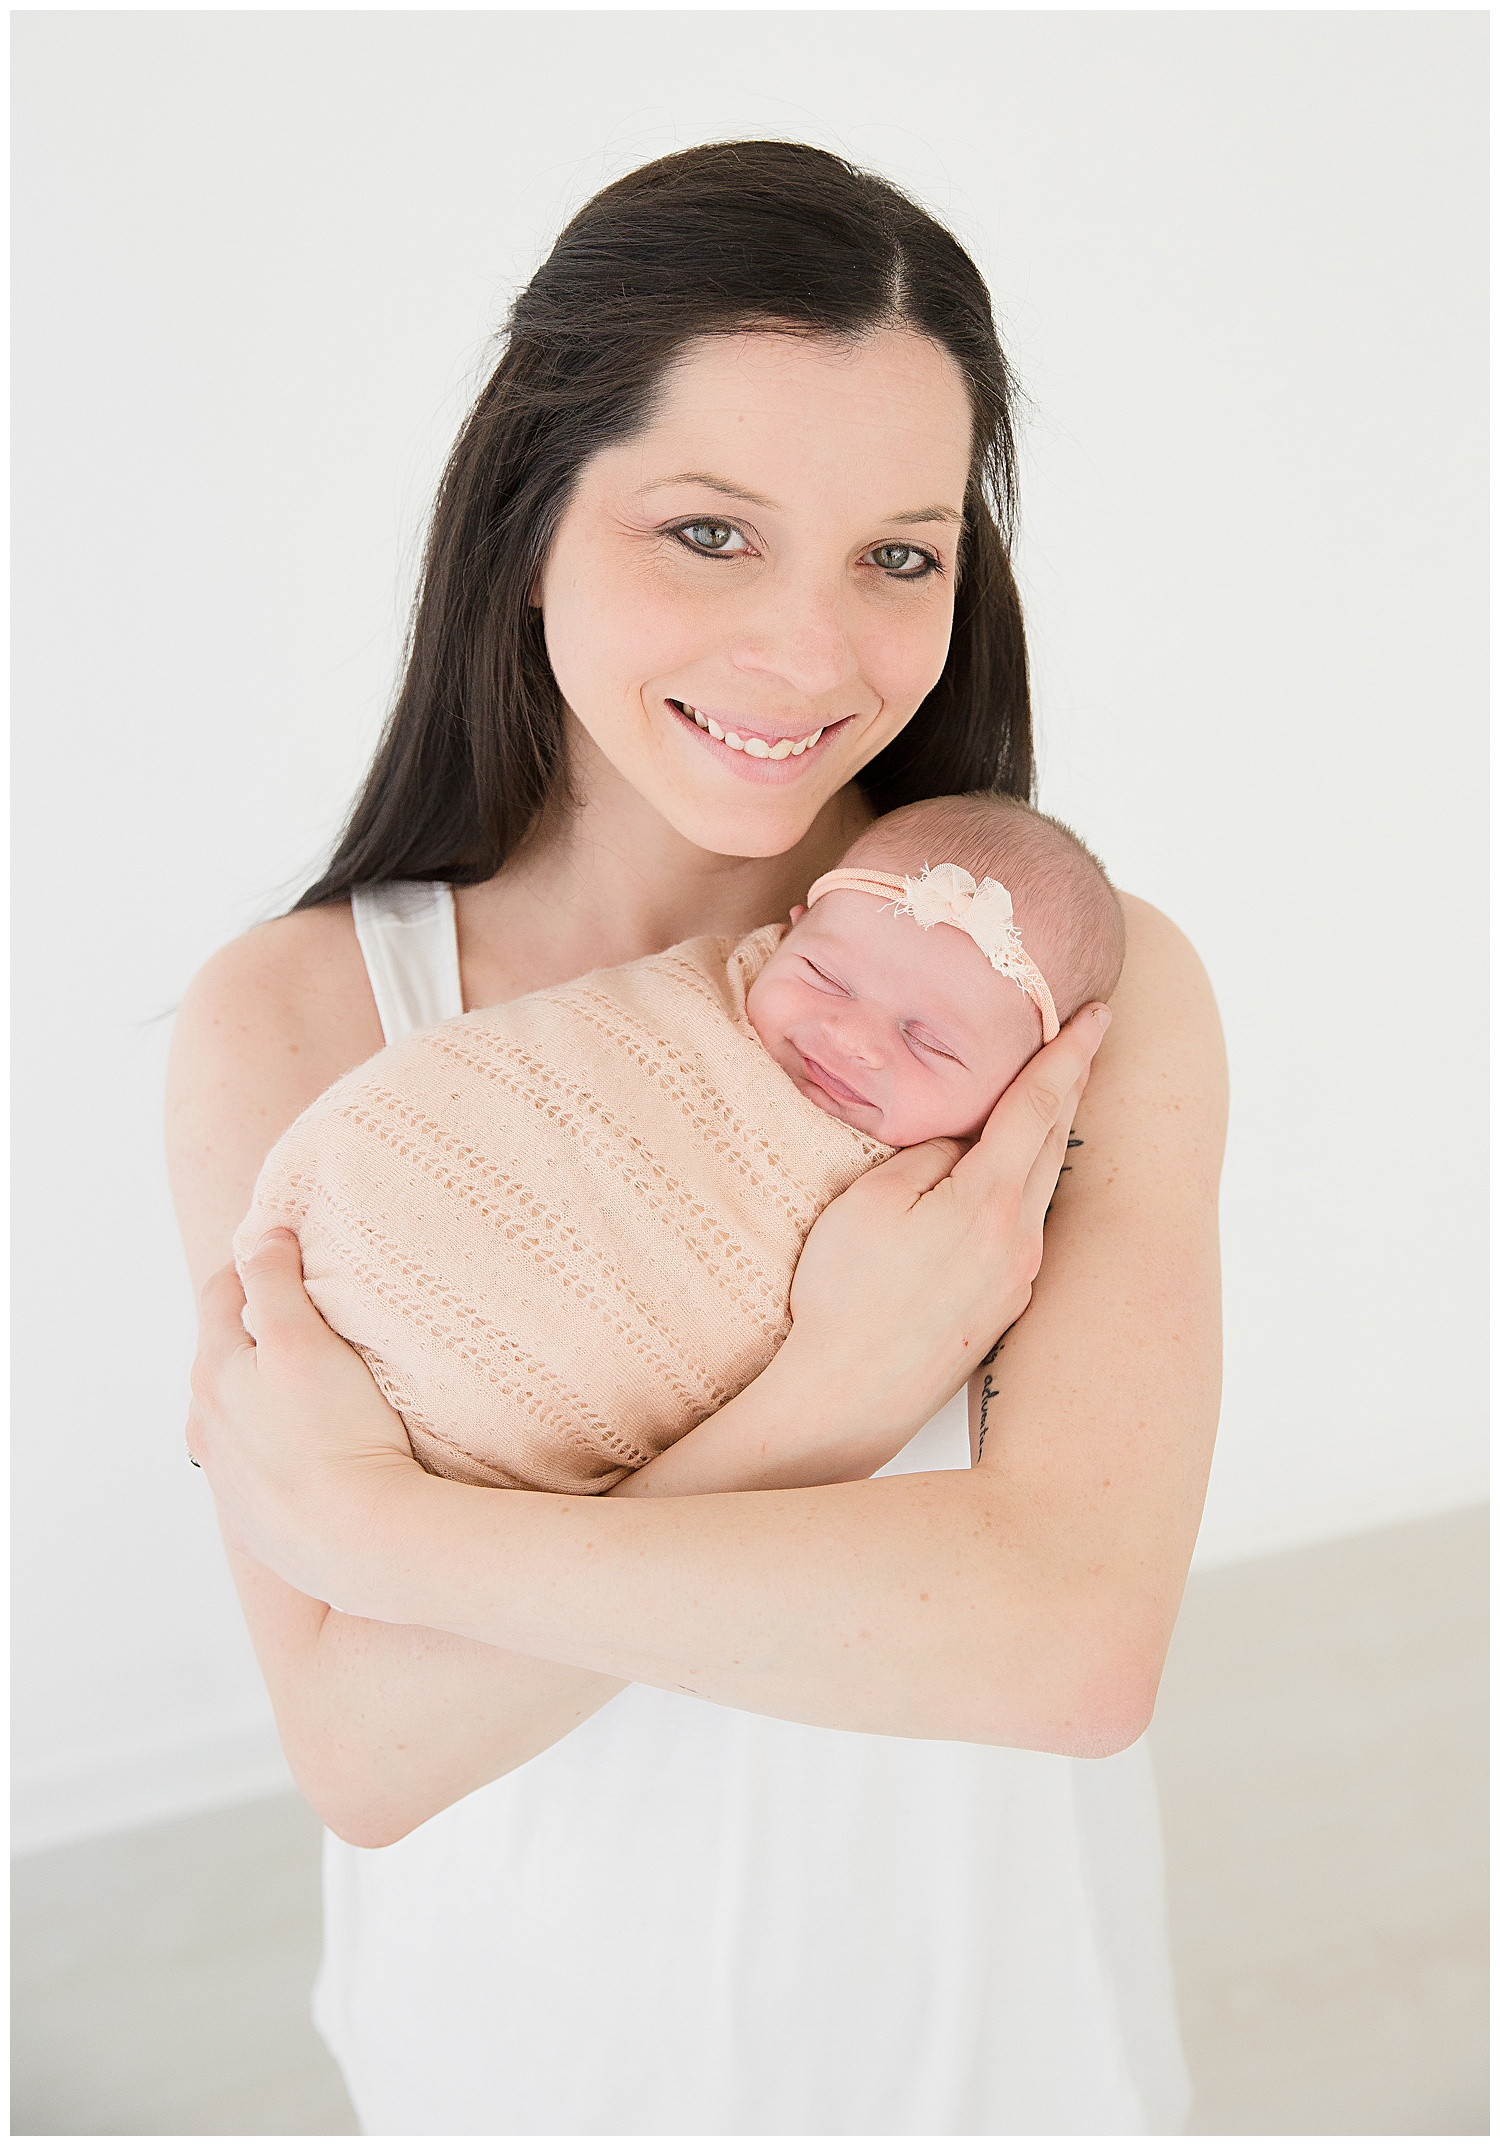 burlington new jersey mom smiling with her baby smiling for their photo shoot